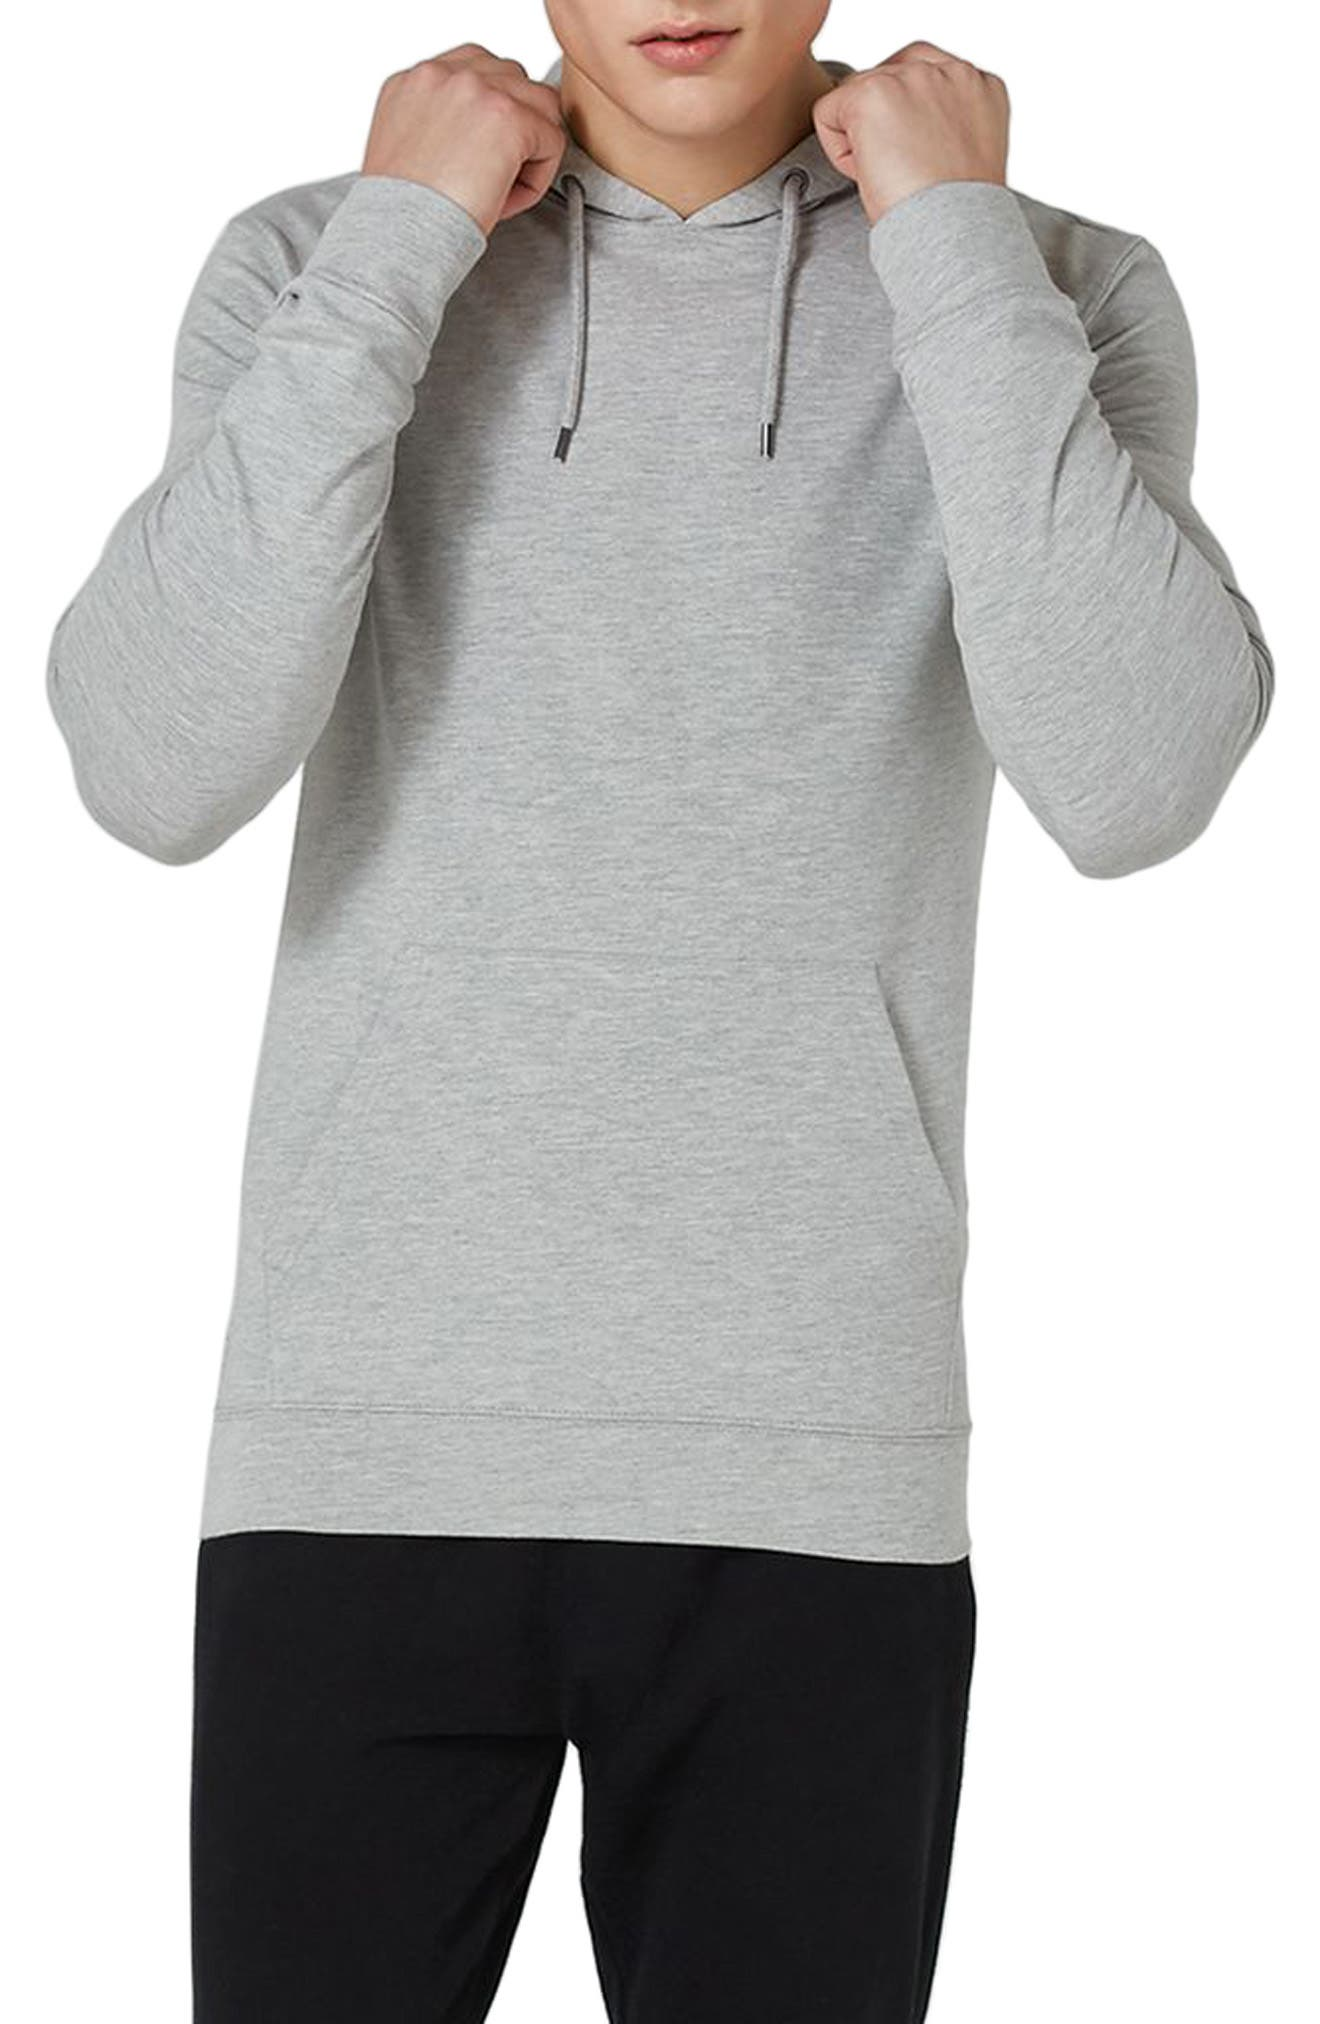 Ultra Muscle Fit Hoodie,                         Main,                         color, Light Grey